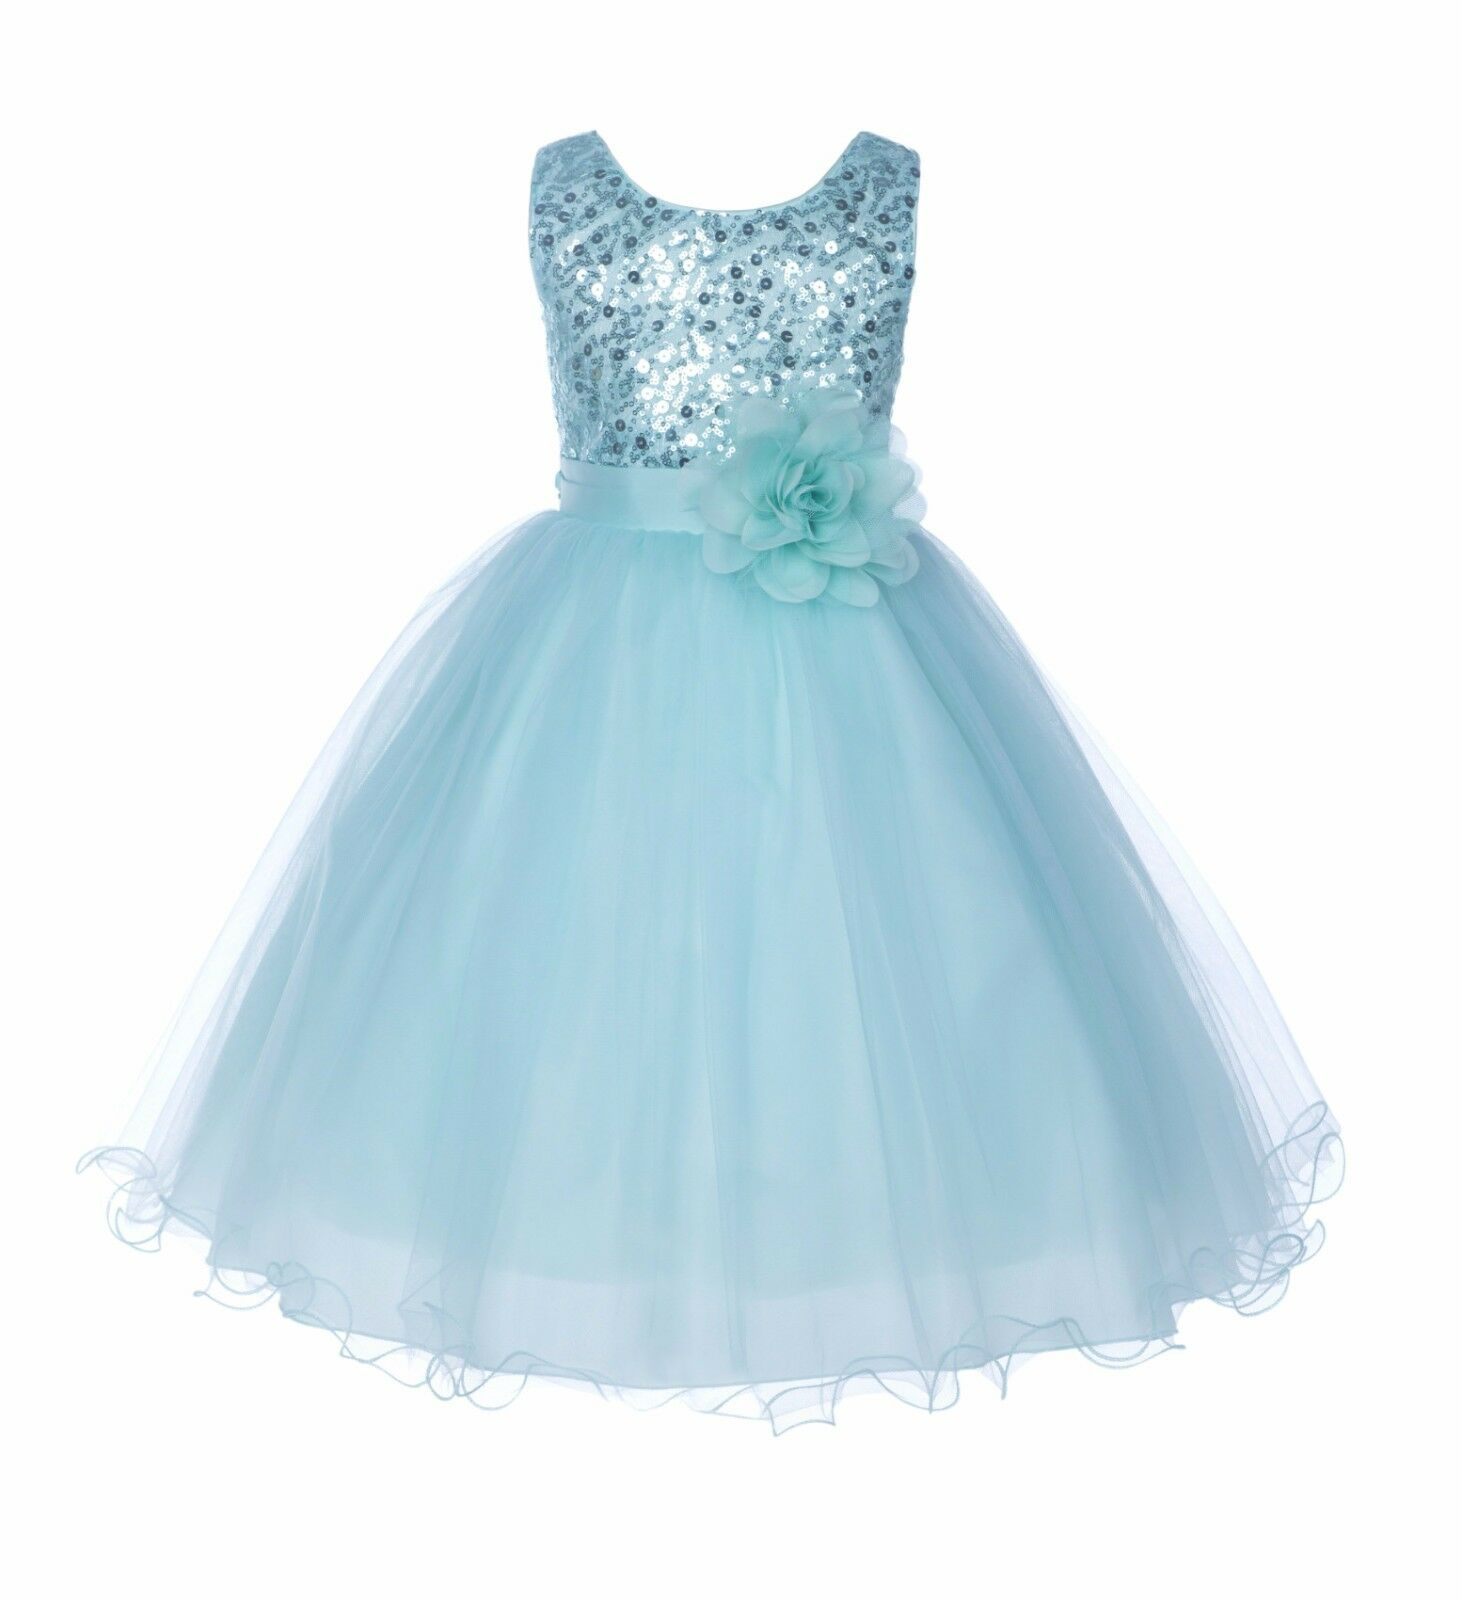 Wedding Sequin Mesh Flower Girl Dresses Graduation Pageant Birthday ...